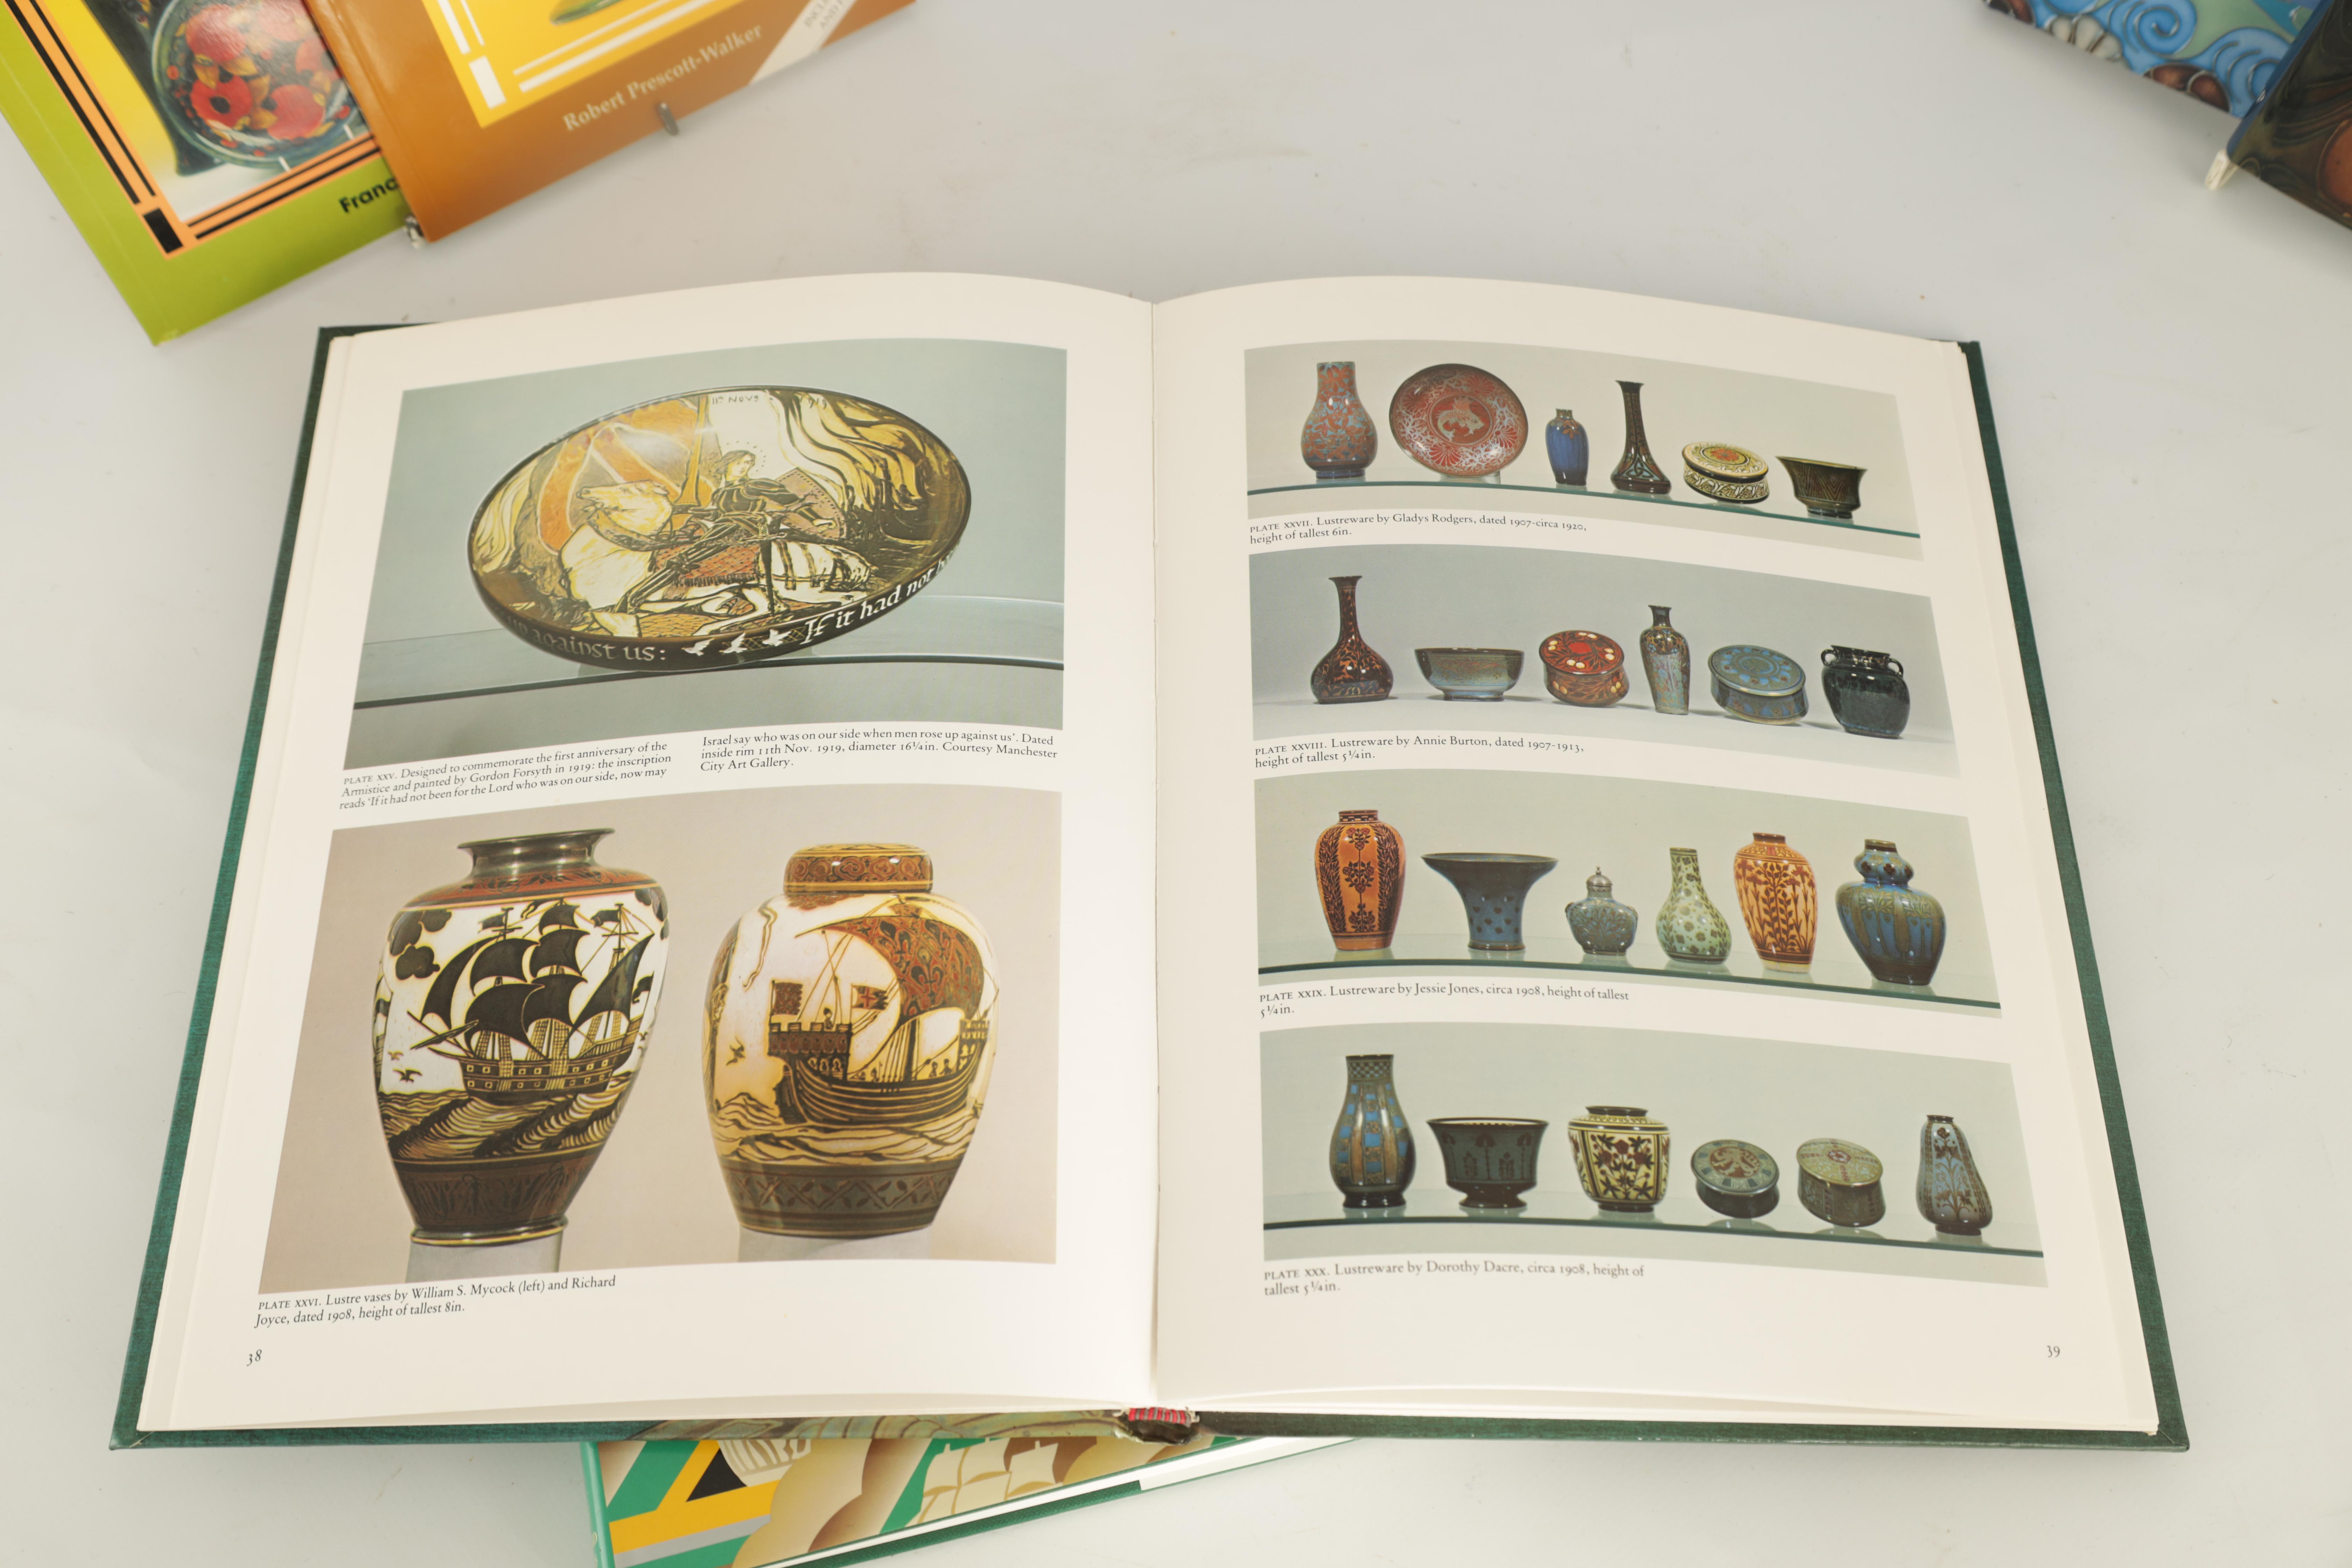 A COLLECTION OF EIGHT CERAMIC REFERENCE BOOKS including Poole pottery by Lesley Haward edited by - Image 3 of 9